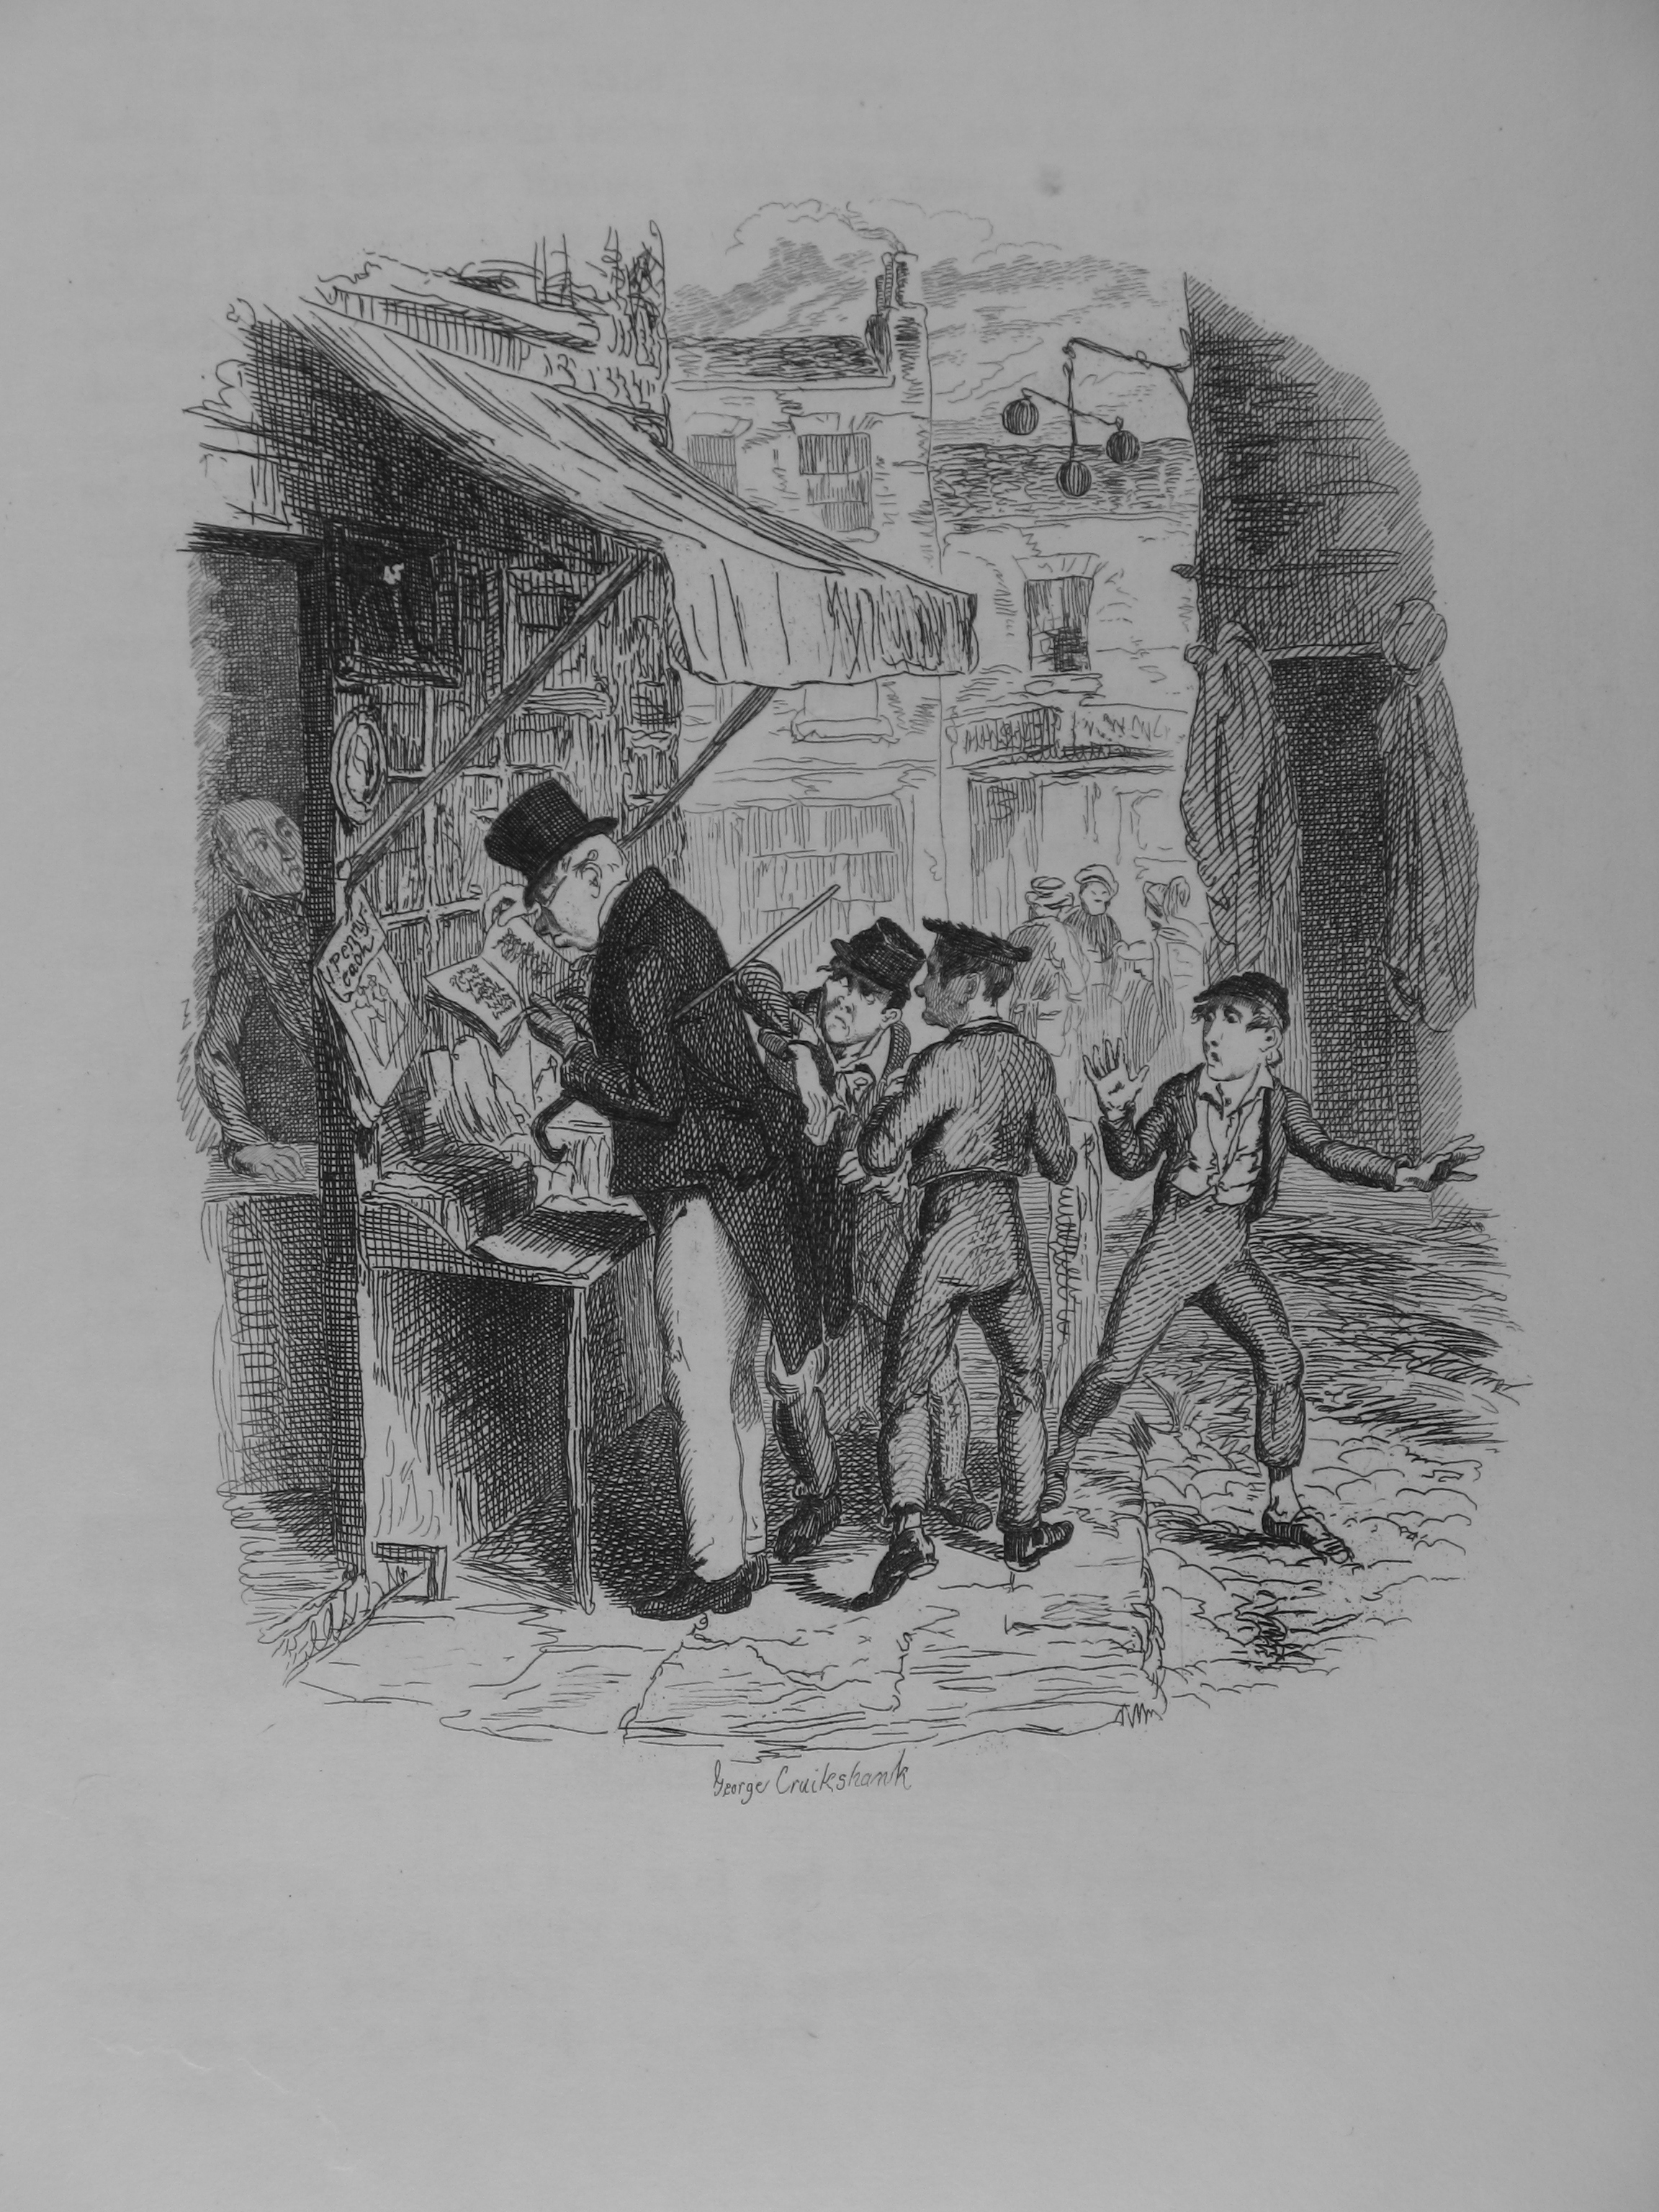 similarities between oliver twist and the biography of charles dickens I am a huge fan of oliver twist and great expectations they've stayed with me my whole life, and inventing scrooge gave me the opportunity to rediscover them dickens is endlessly fascinating.